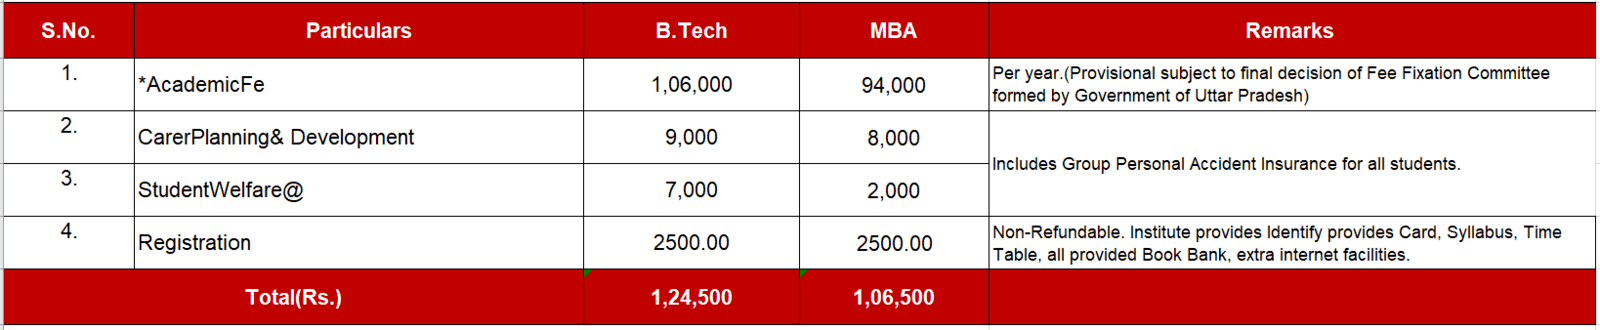 Fee Structure breakage B.Tech and MBA at ITS